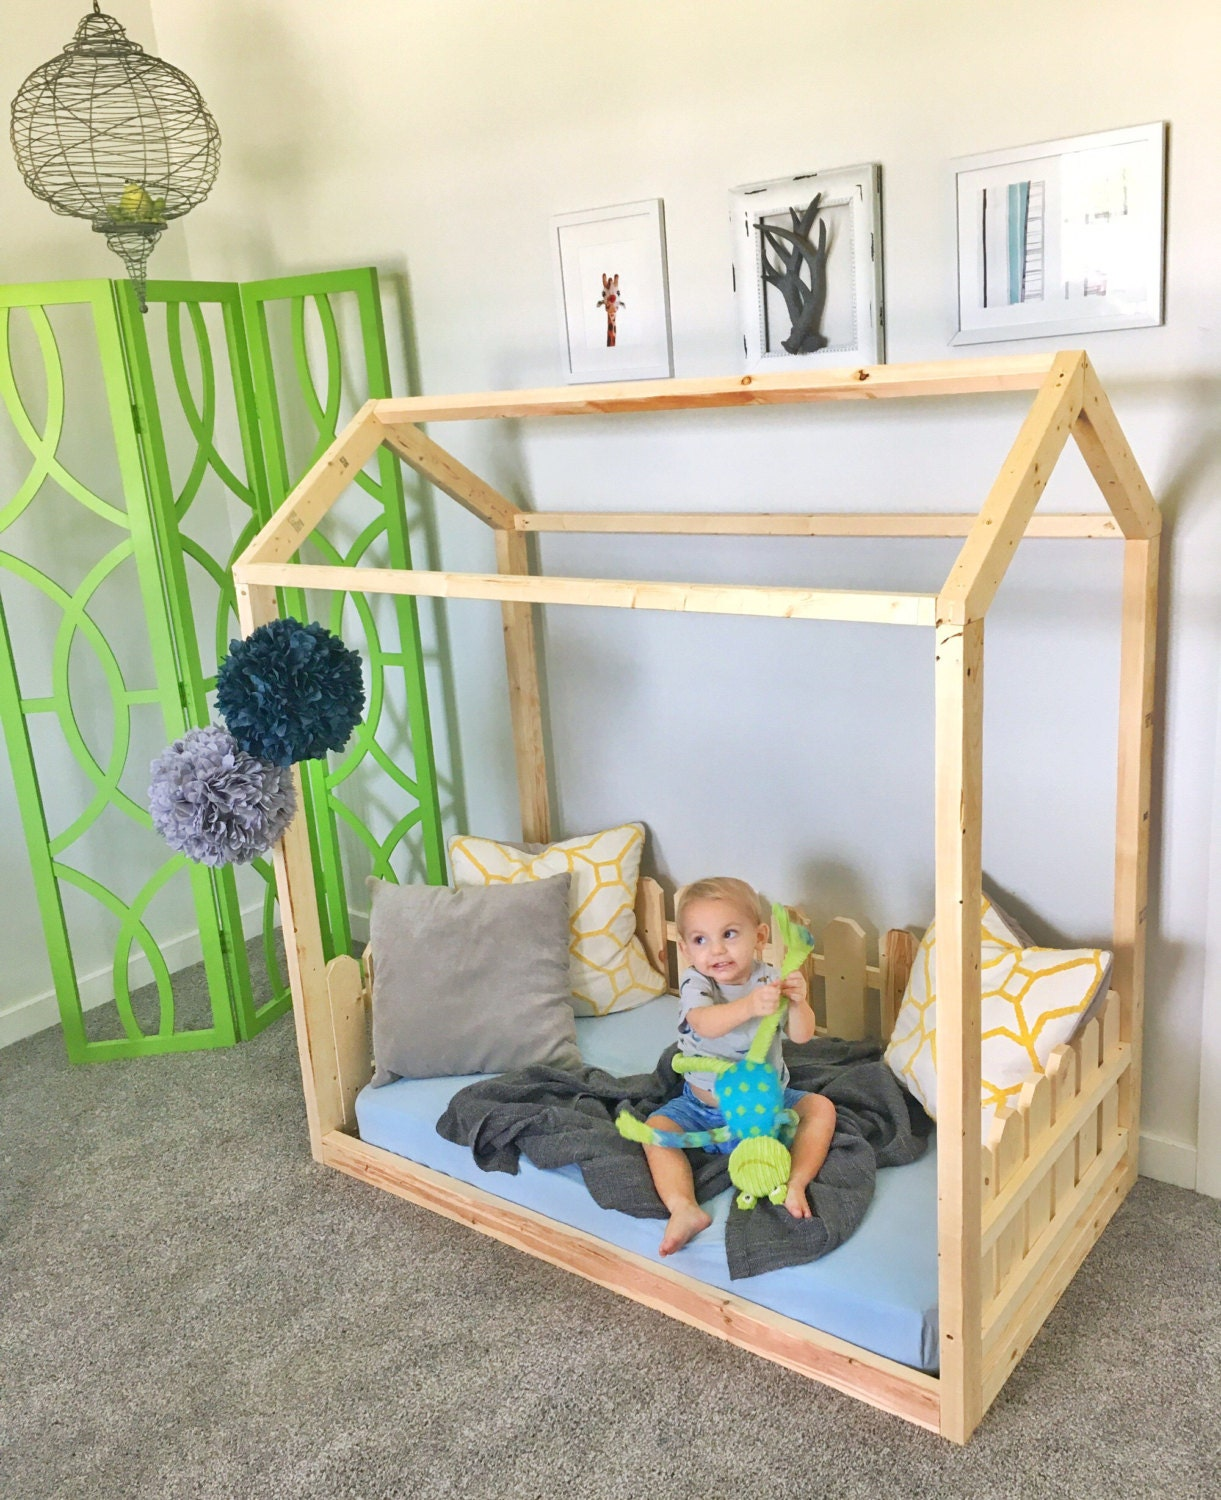 Made in us toddler bed frame house bed picket fence for Frame house bed